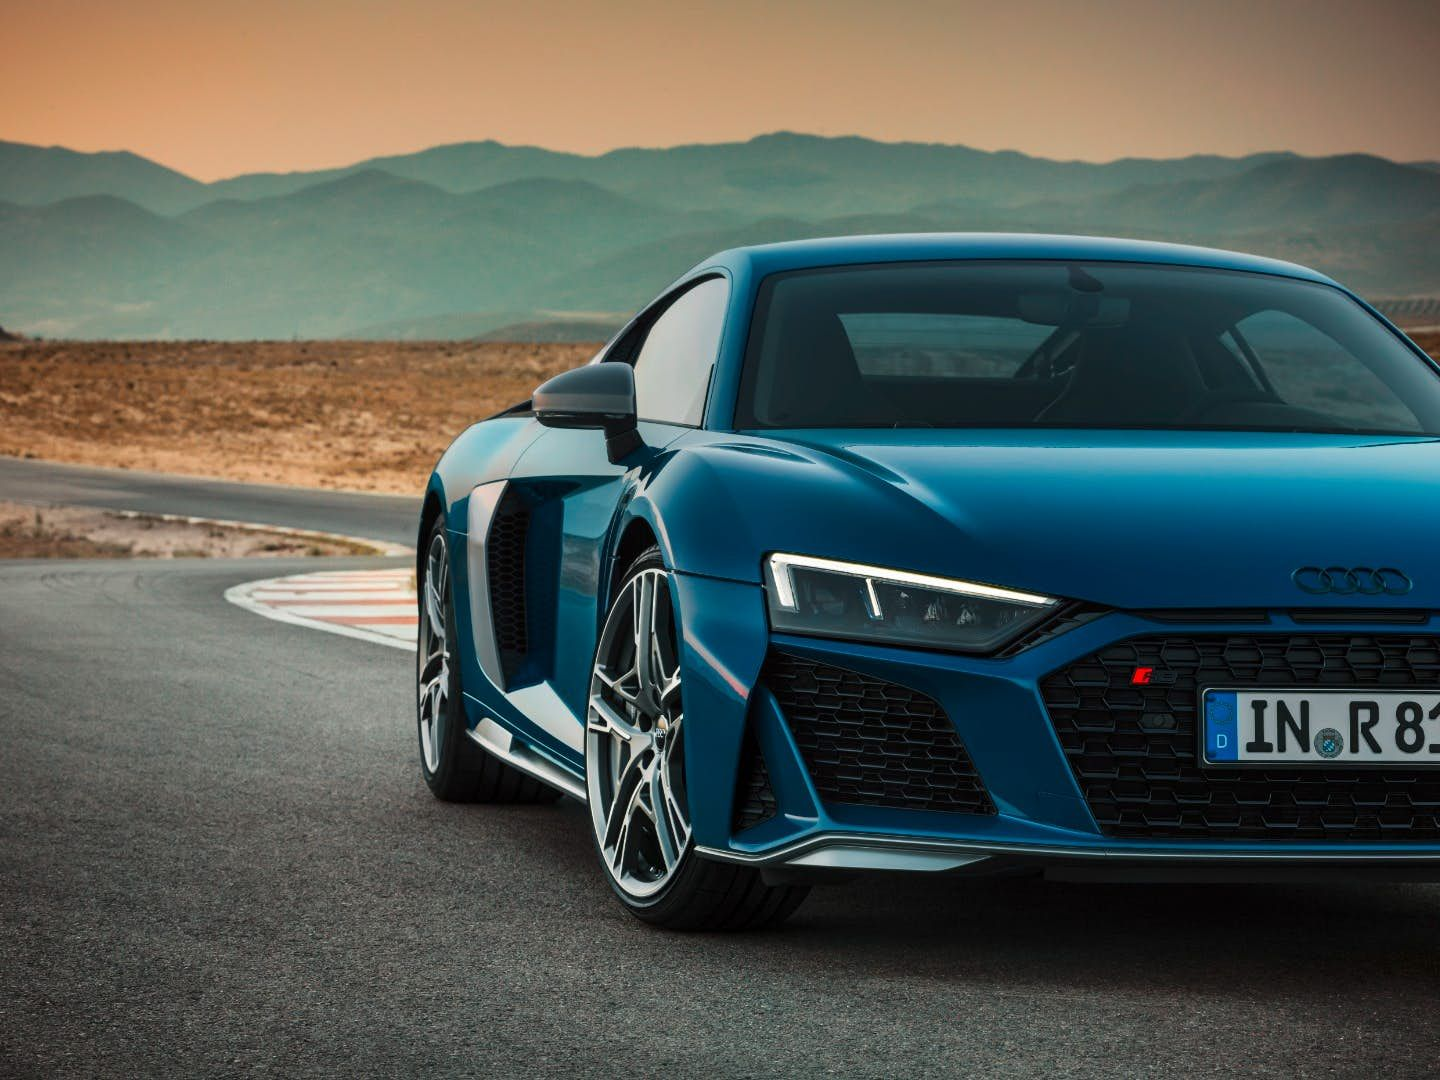 Audi Gives The R8 Coupe More Power And A Revised Look Audi R8 4 Door Sports Cars Super Cars